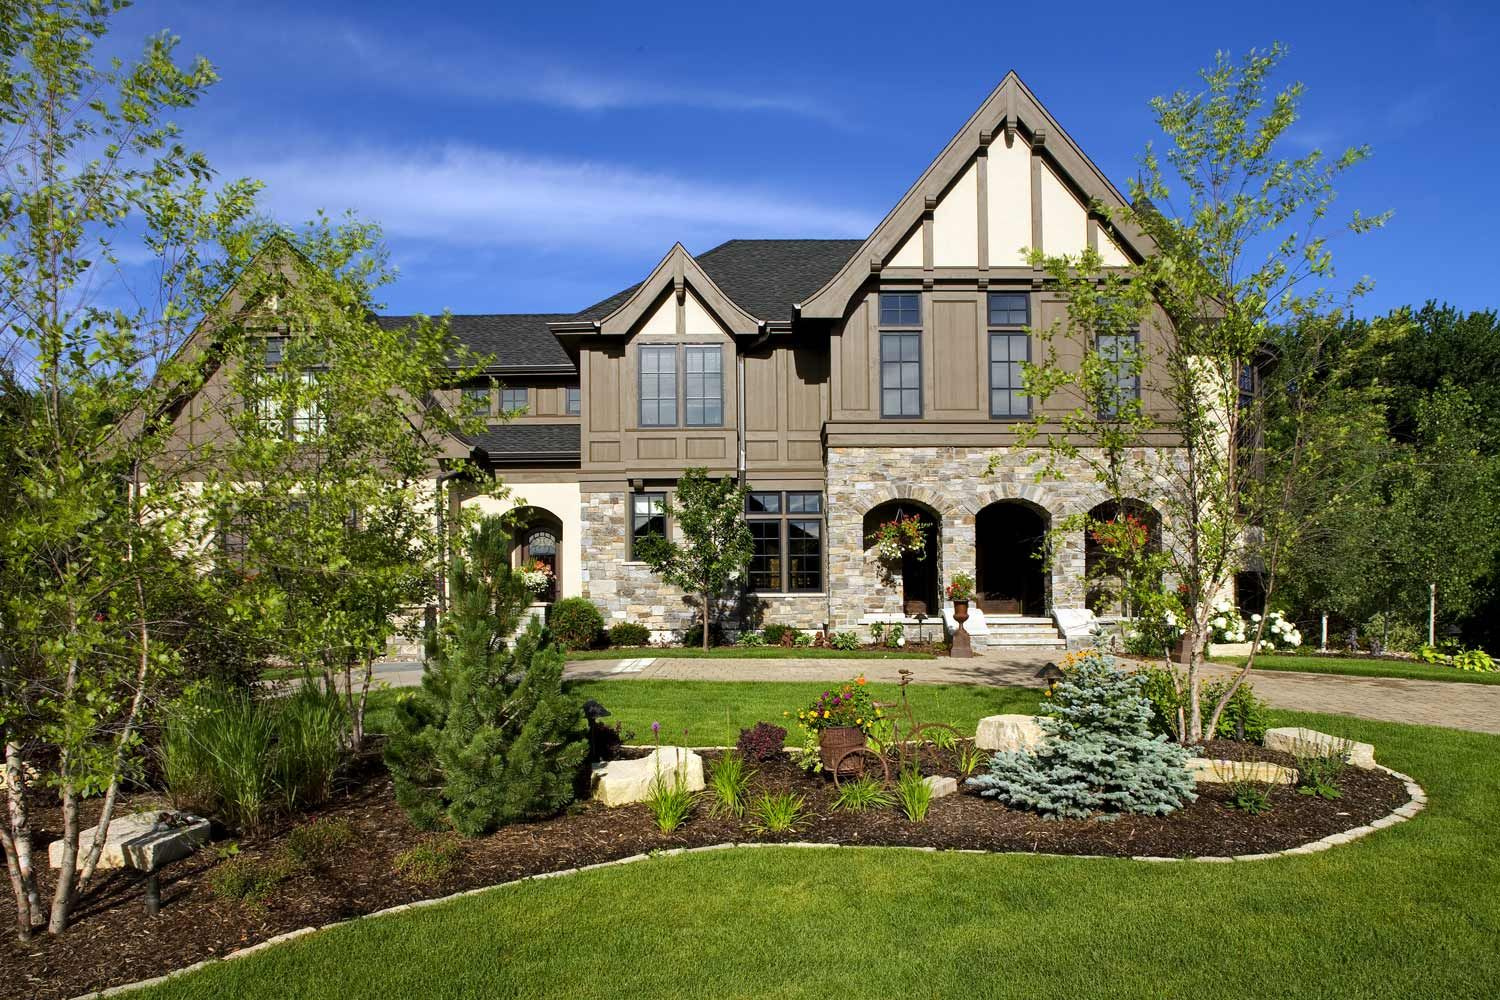 Luxury permeable paver driveway Minneapolis MN landscaping ... on Luxury Front Yard Landscape id=61356